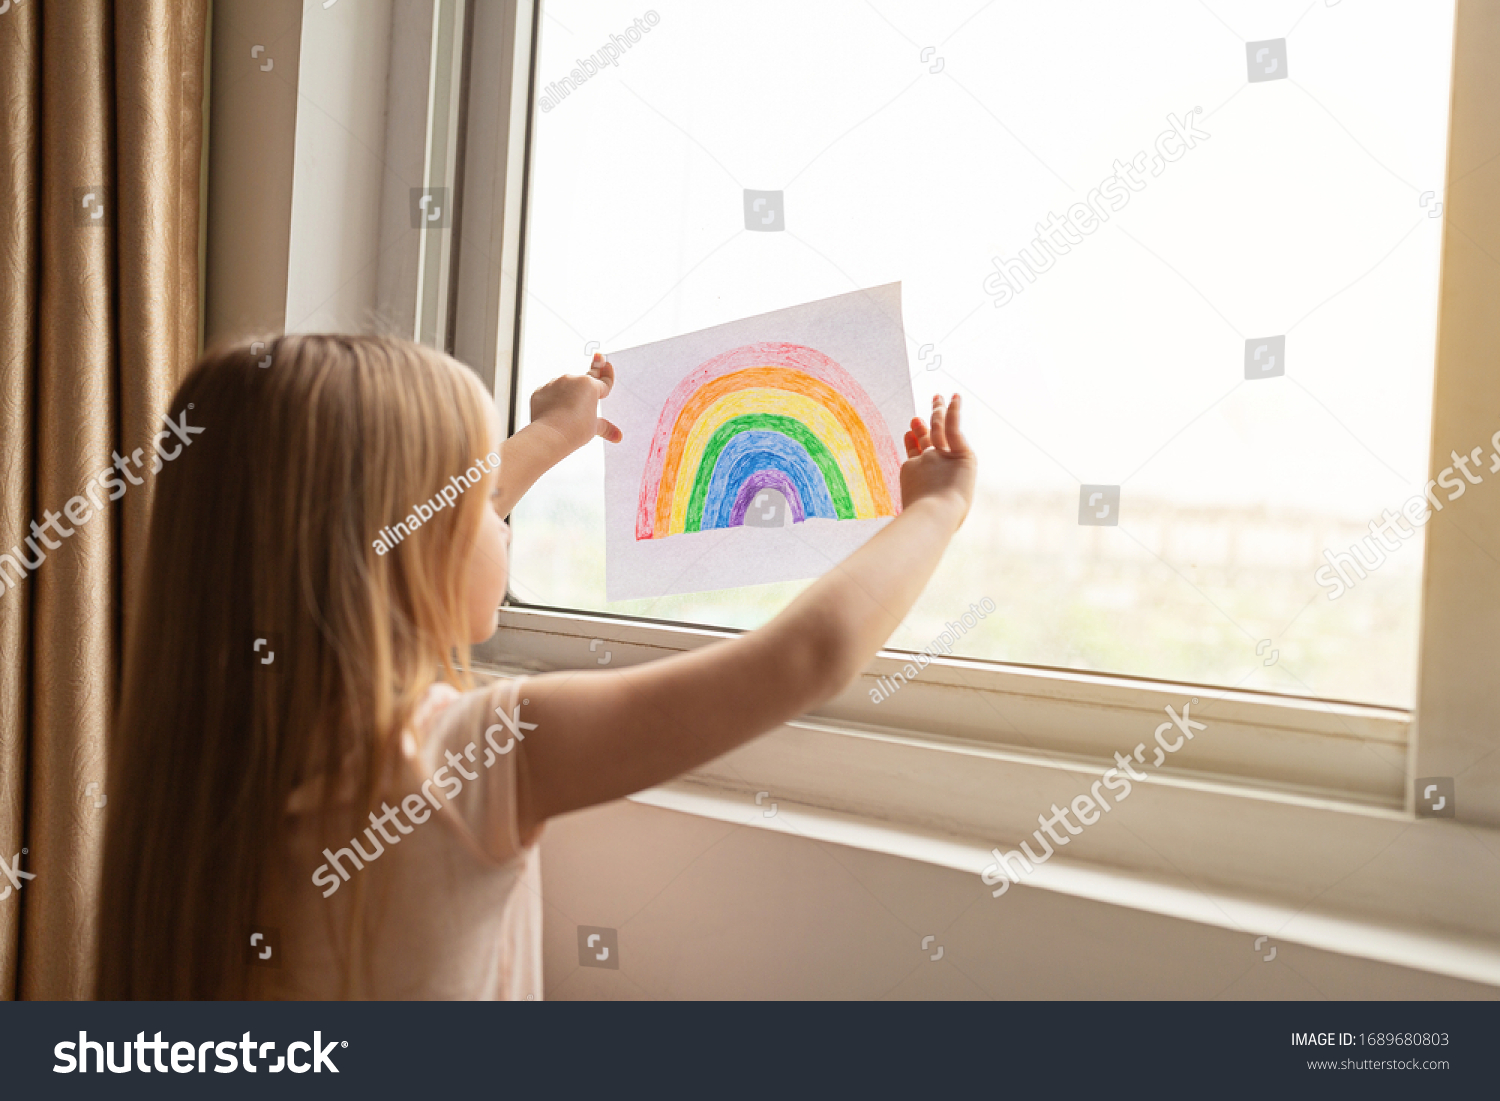 Kid painting rainbow during Covid-19 quarantine at home. Girl near window. Stay at home Social media campaign for coronavirus prevention, let's all be well, hope during coronavirus pandemic concept #1689680803